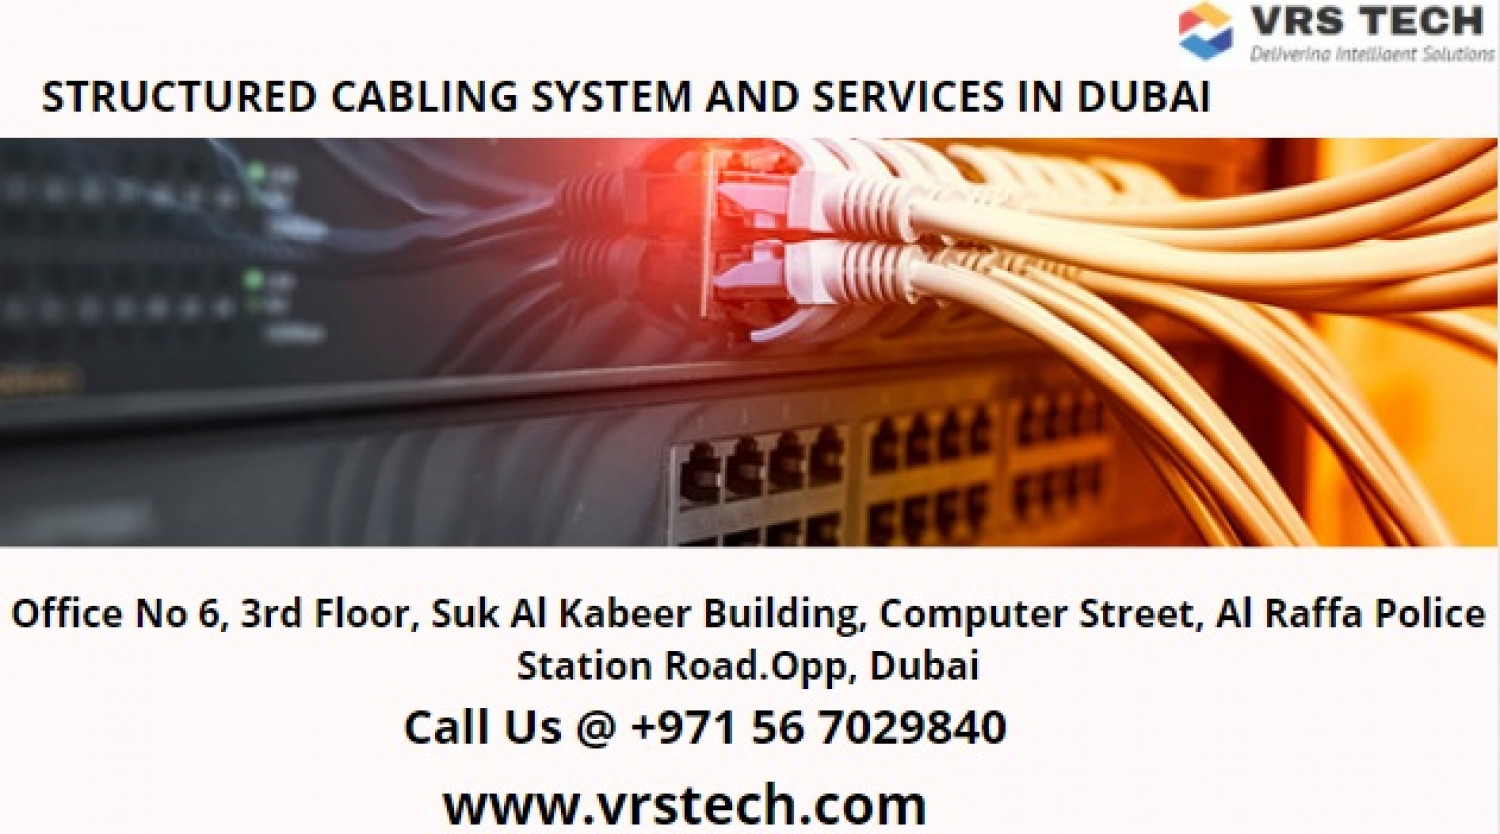 STRUCTURED CABLING SYSTEM AND SERVICES IN DUBAI Infographic